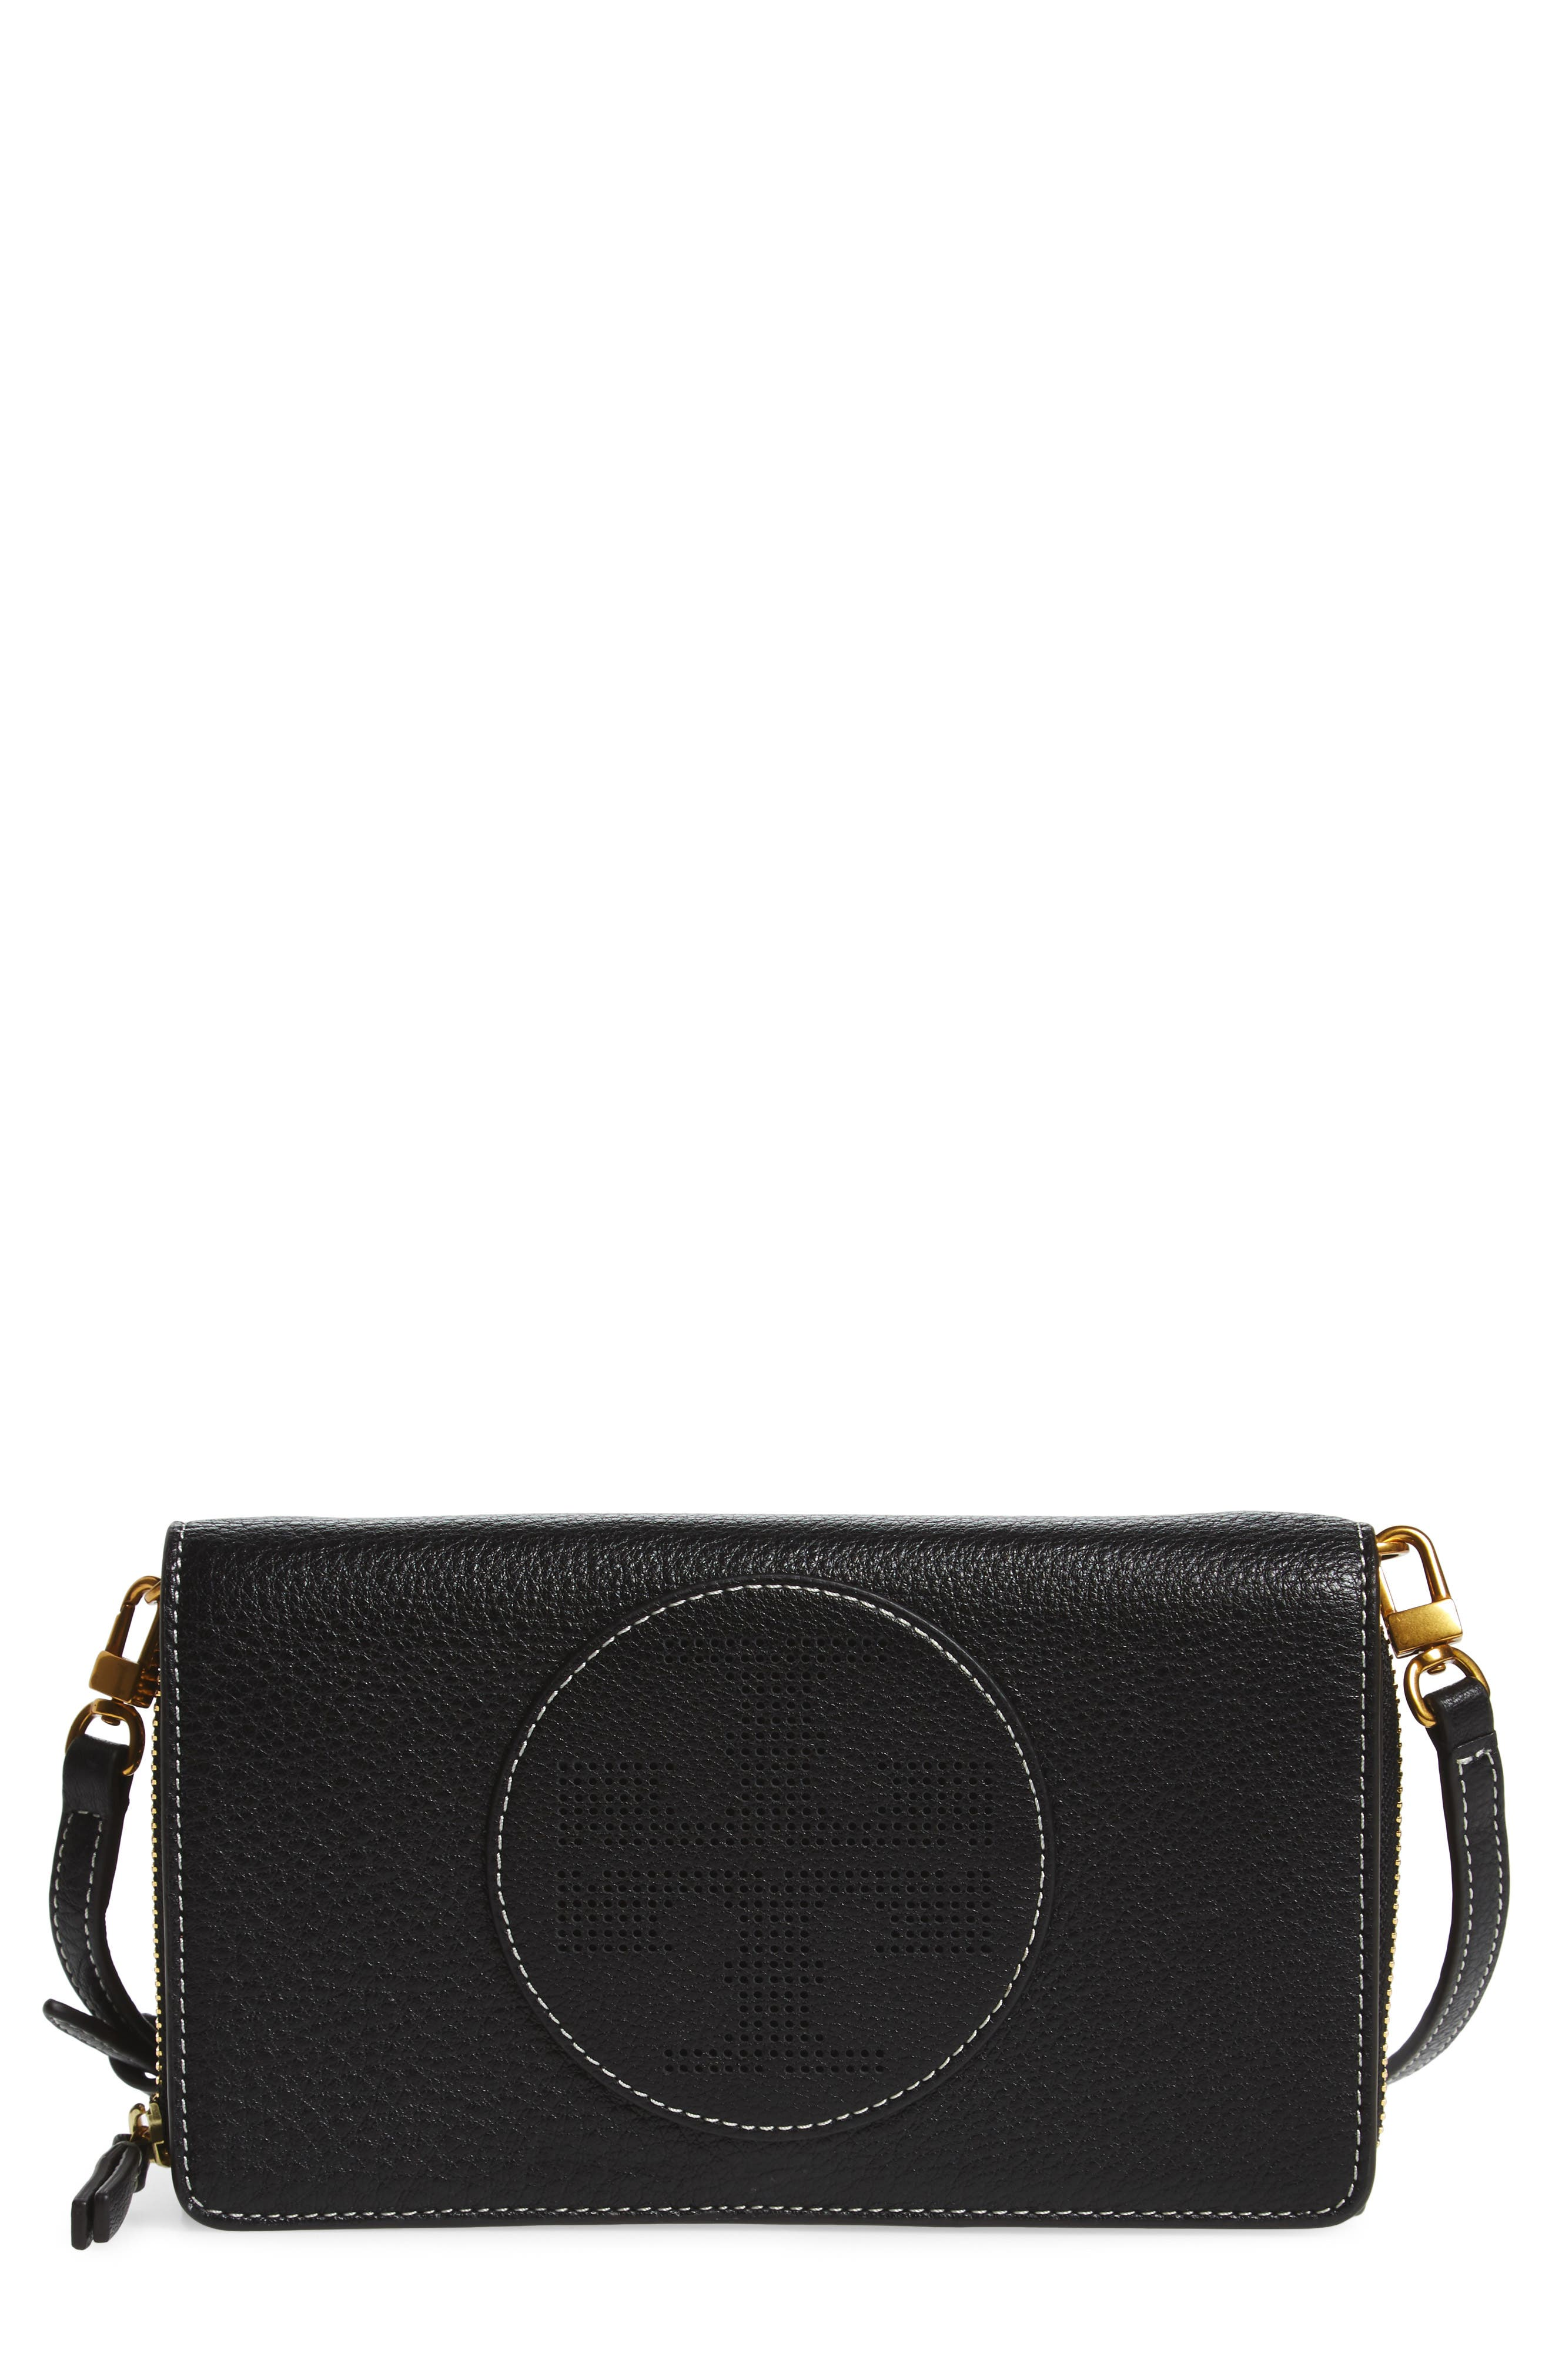 Tory Burch Perforated Leather Wallet Crossbody Bag